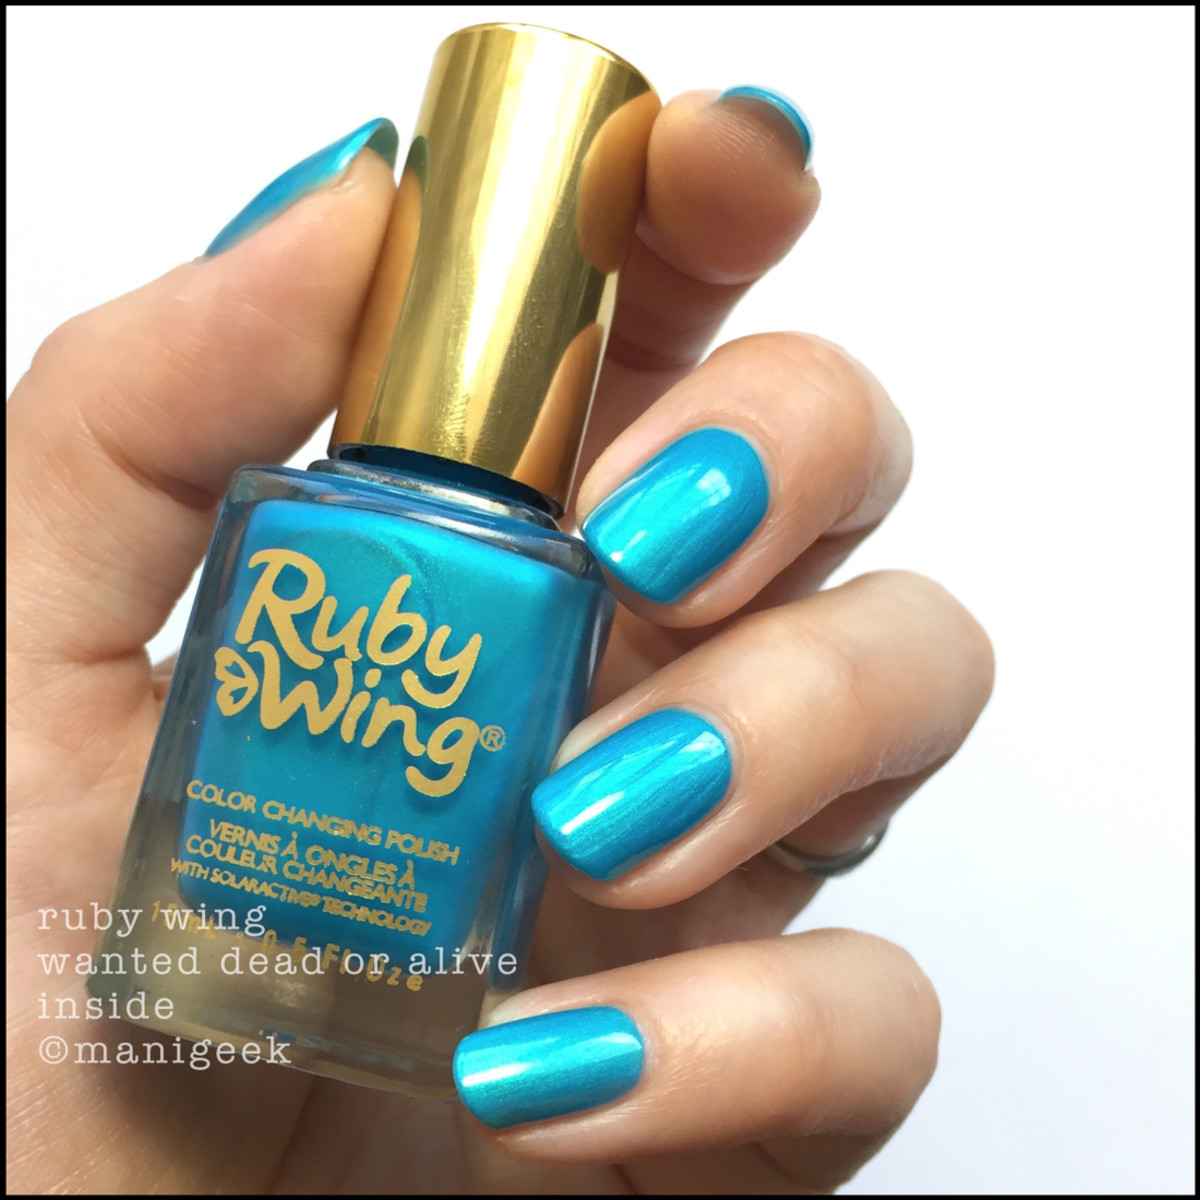 Ruby Wing Wanted Dead or Alive Inside Nail Polish